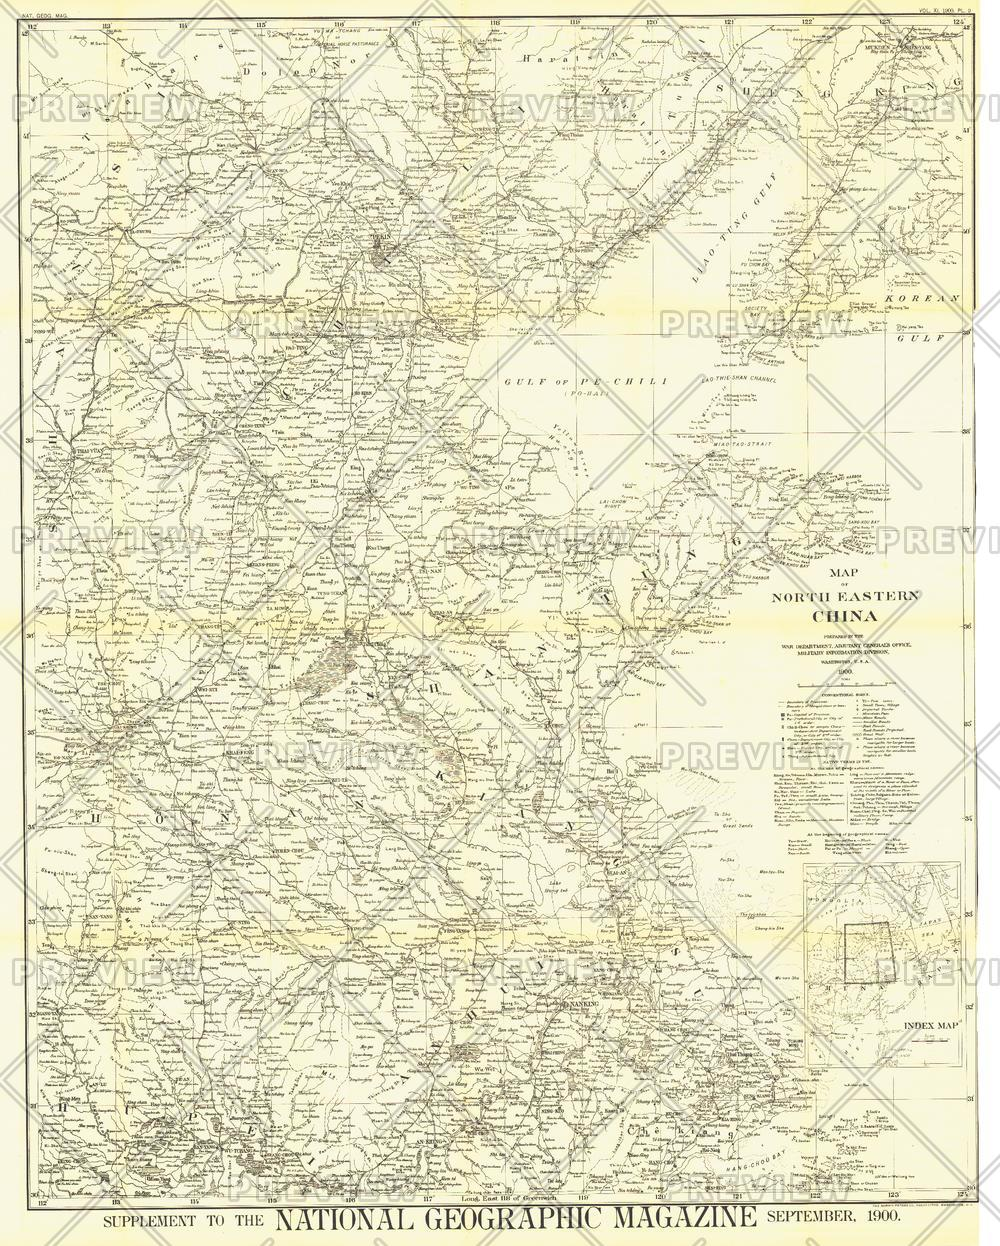 Map of North Eastern China - Published 1900